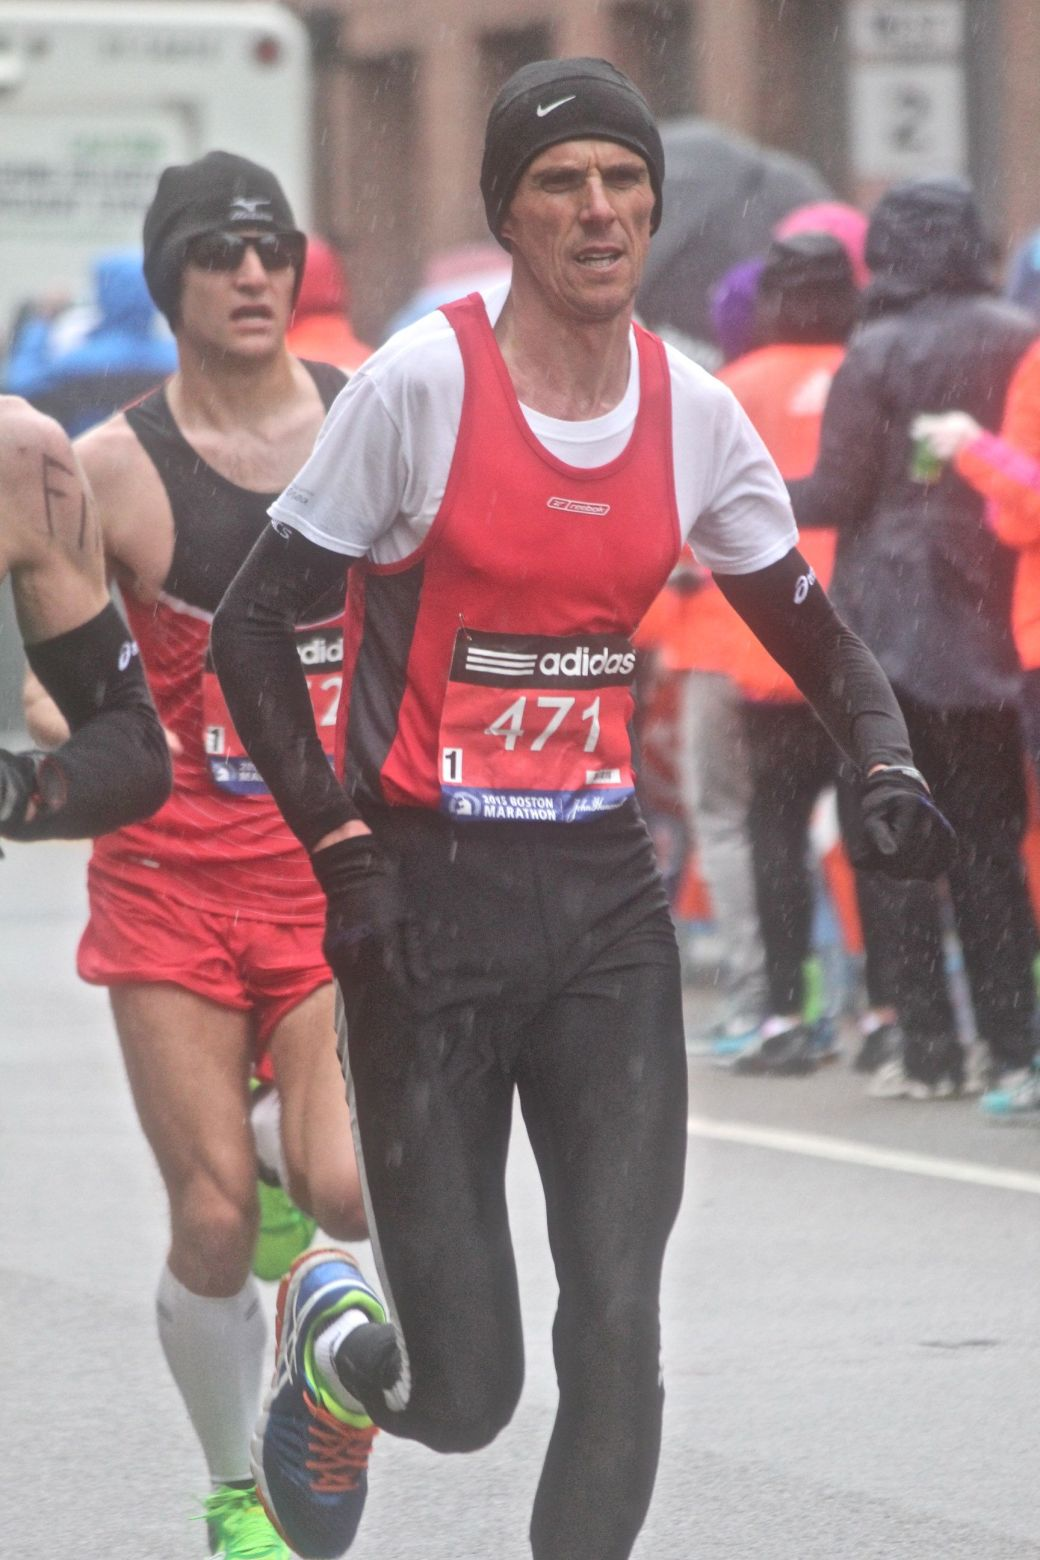 boston marathon april 20 2015 racer number 471 rain